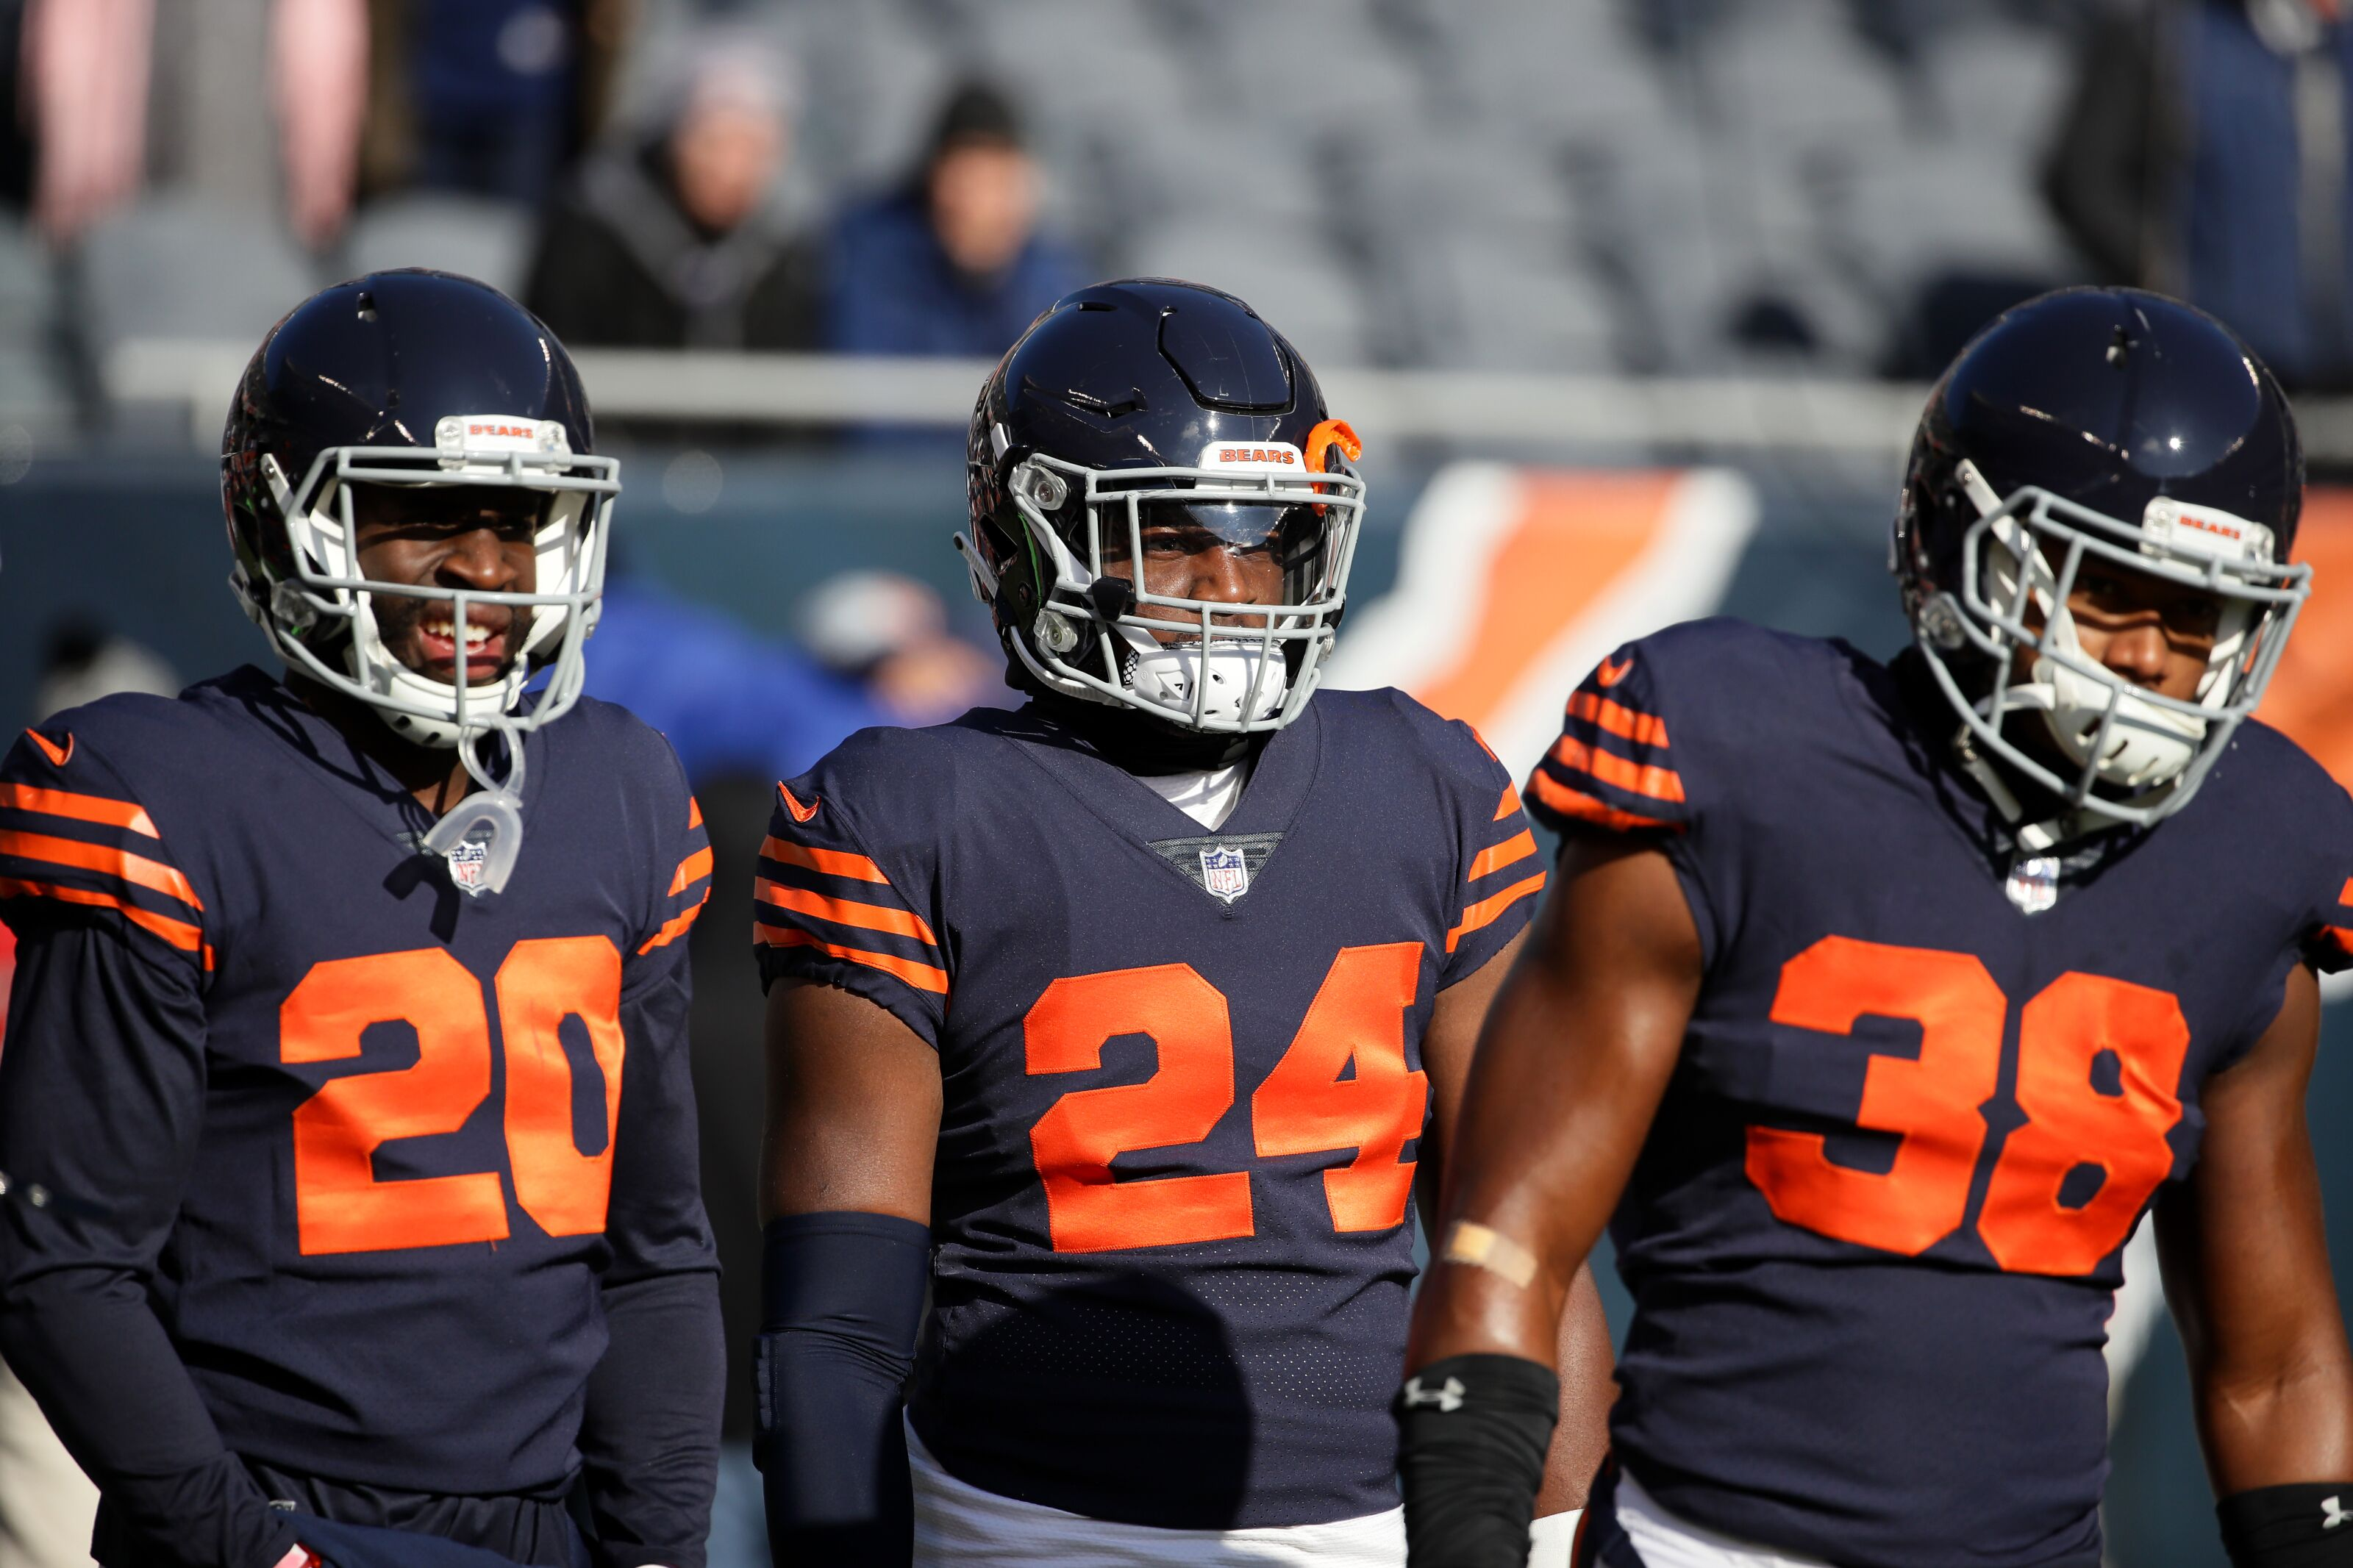 b35987f1429 Chicago Bears: Ranking their throwback uniforms - Page 5